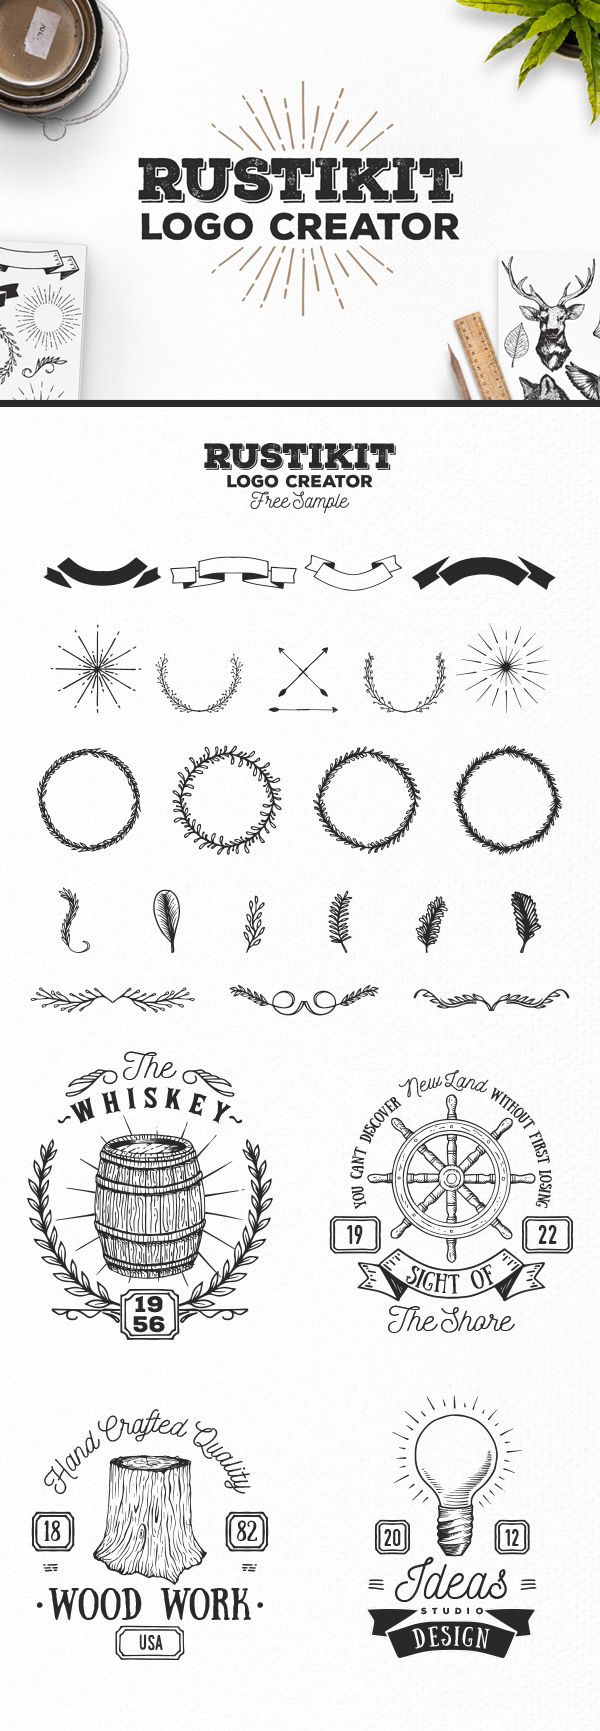 Today's special is a Rustikit Logo Creation Kit which includes 4 pre-made logos and 20 fully editable and scaleable elements to work with. This Kit is inspired by nature and surely it will help you create great logos for your projects.